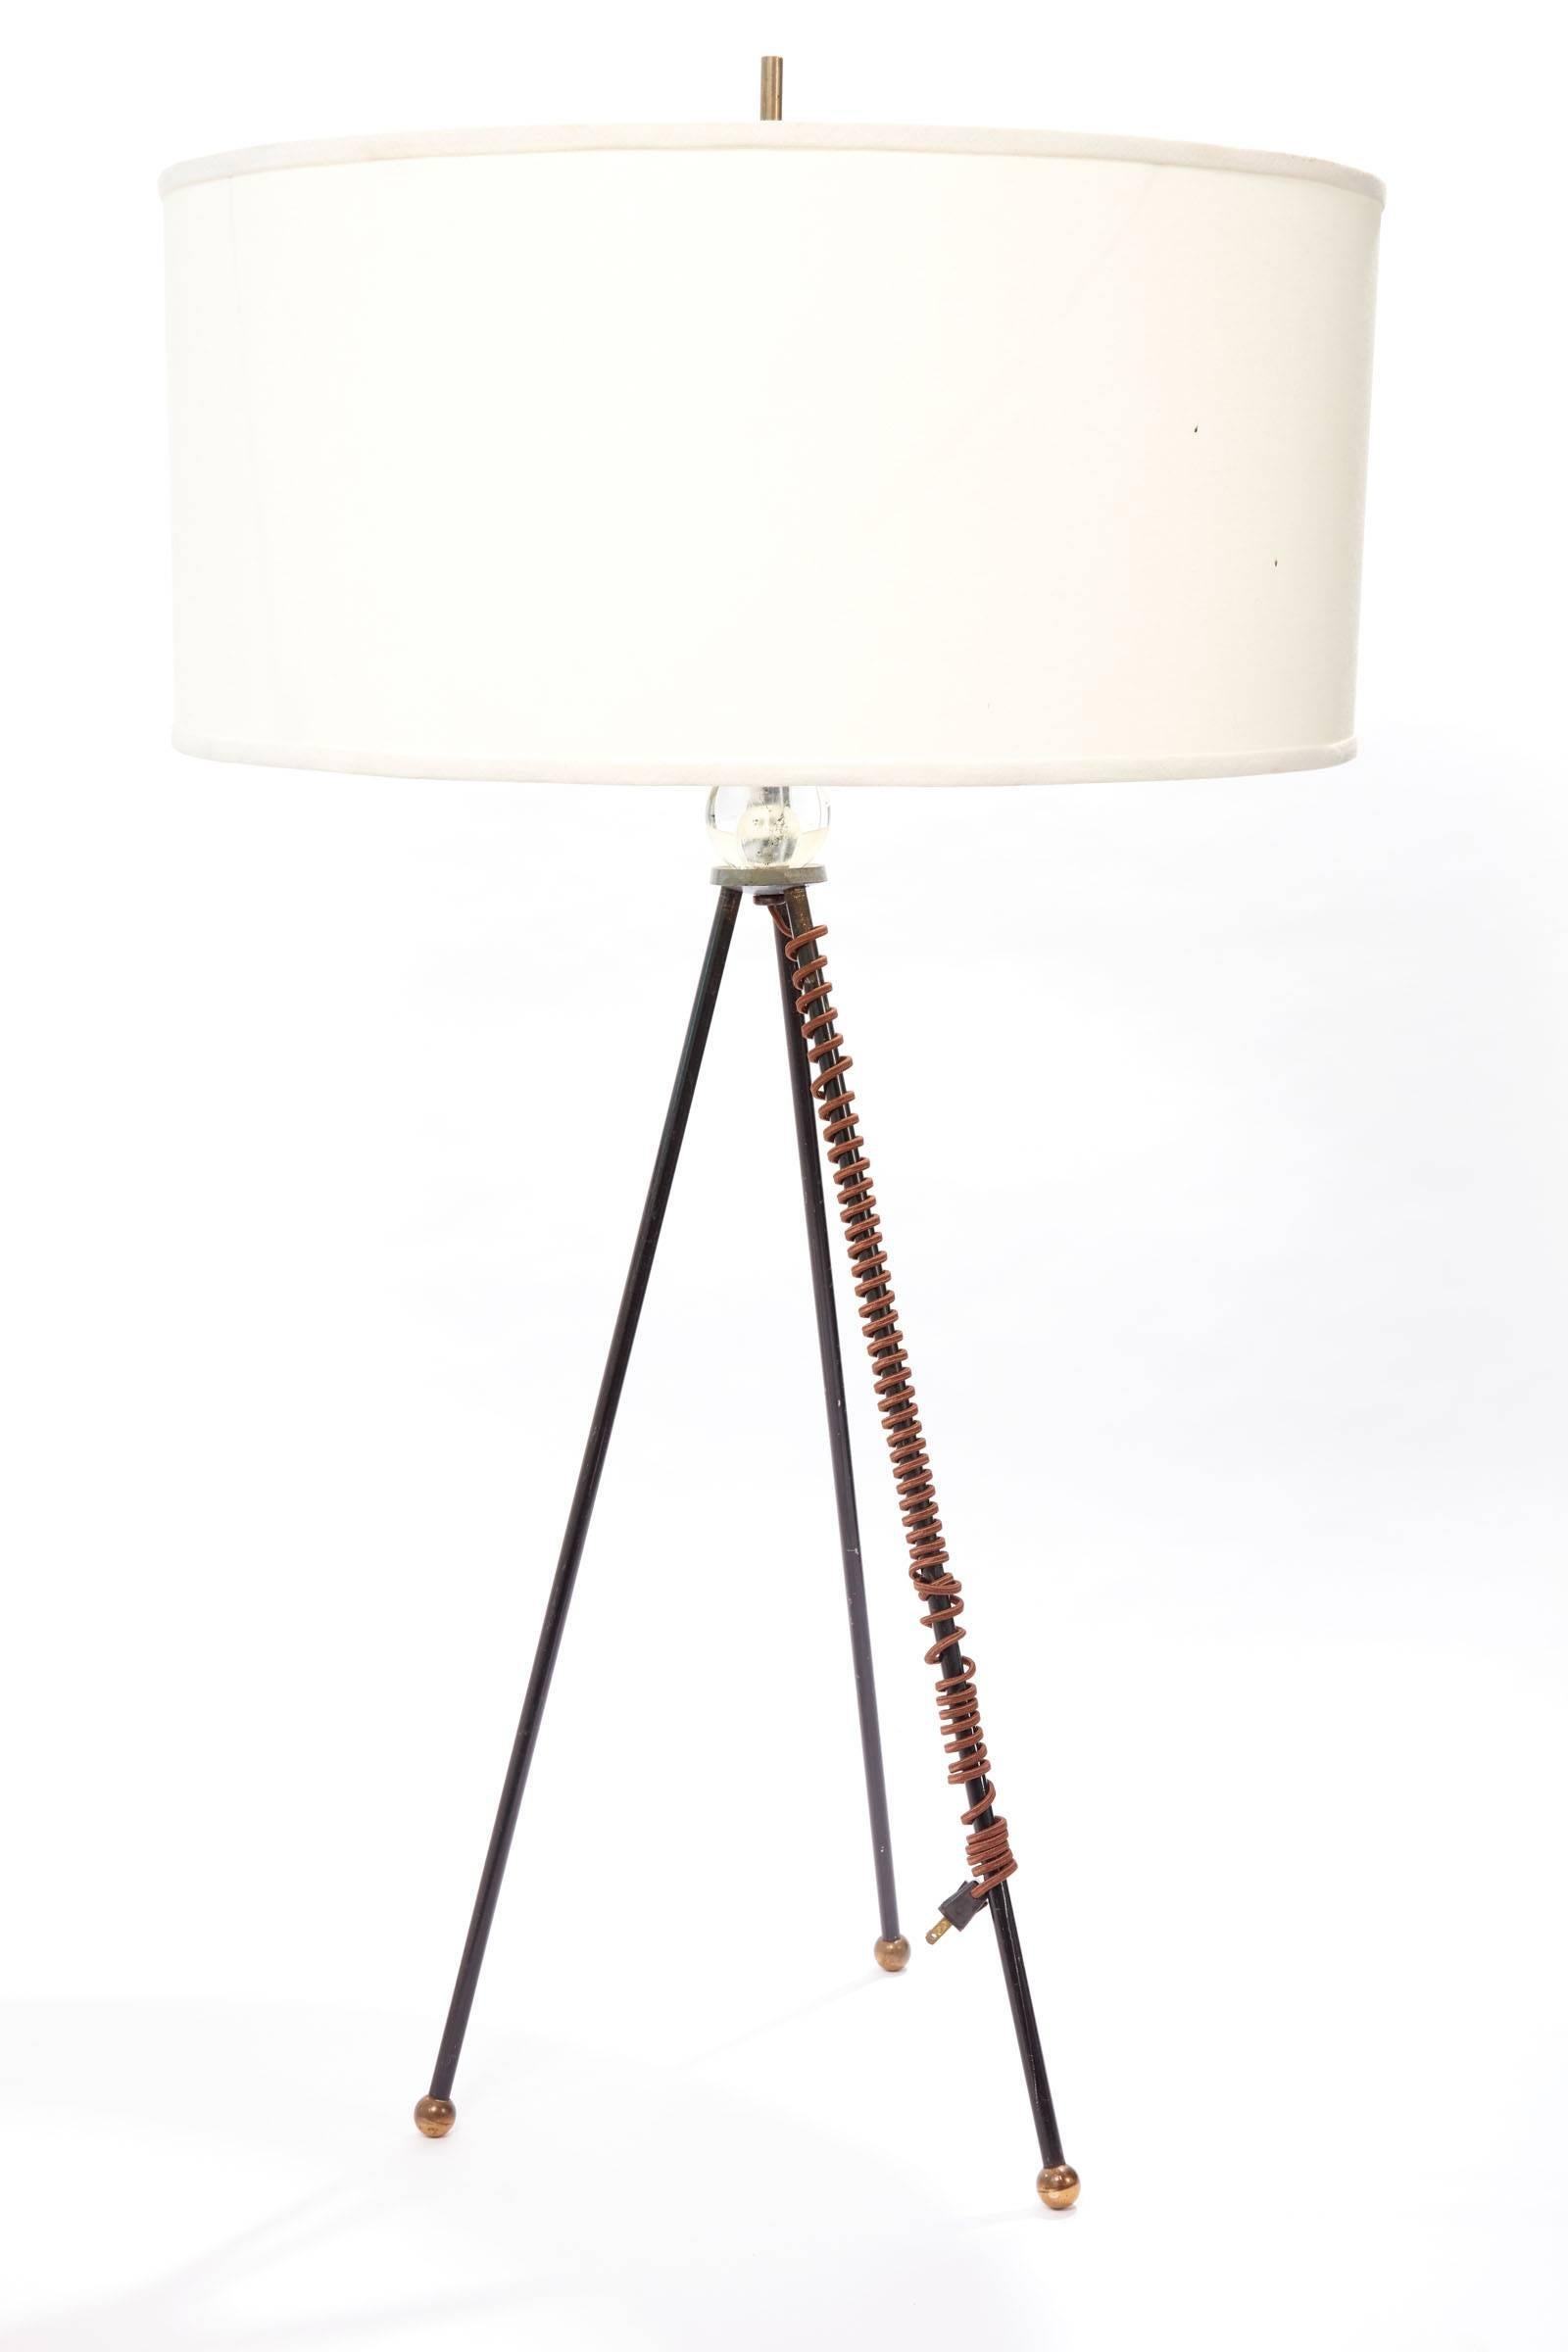 Mid 20th Century Extra Tall Iron Table Lamp With Custom Shade For Sale At 1stdibs